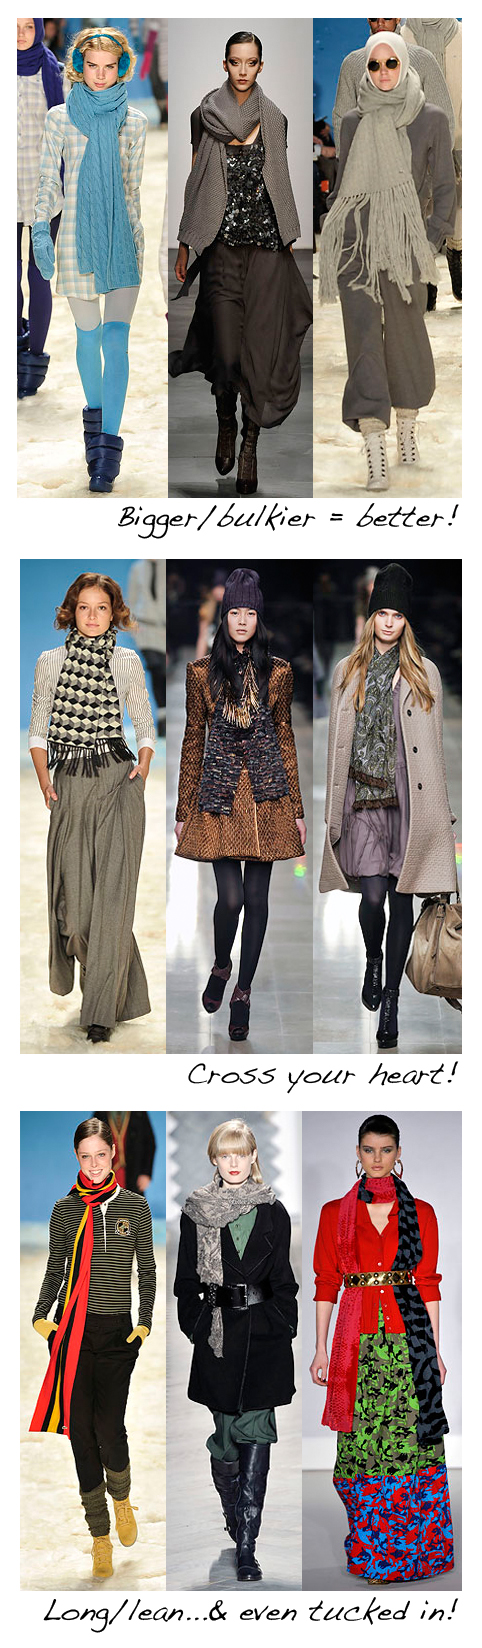 Scarves on the fall 2008 runway - how to wear it